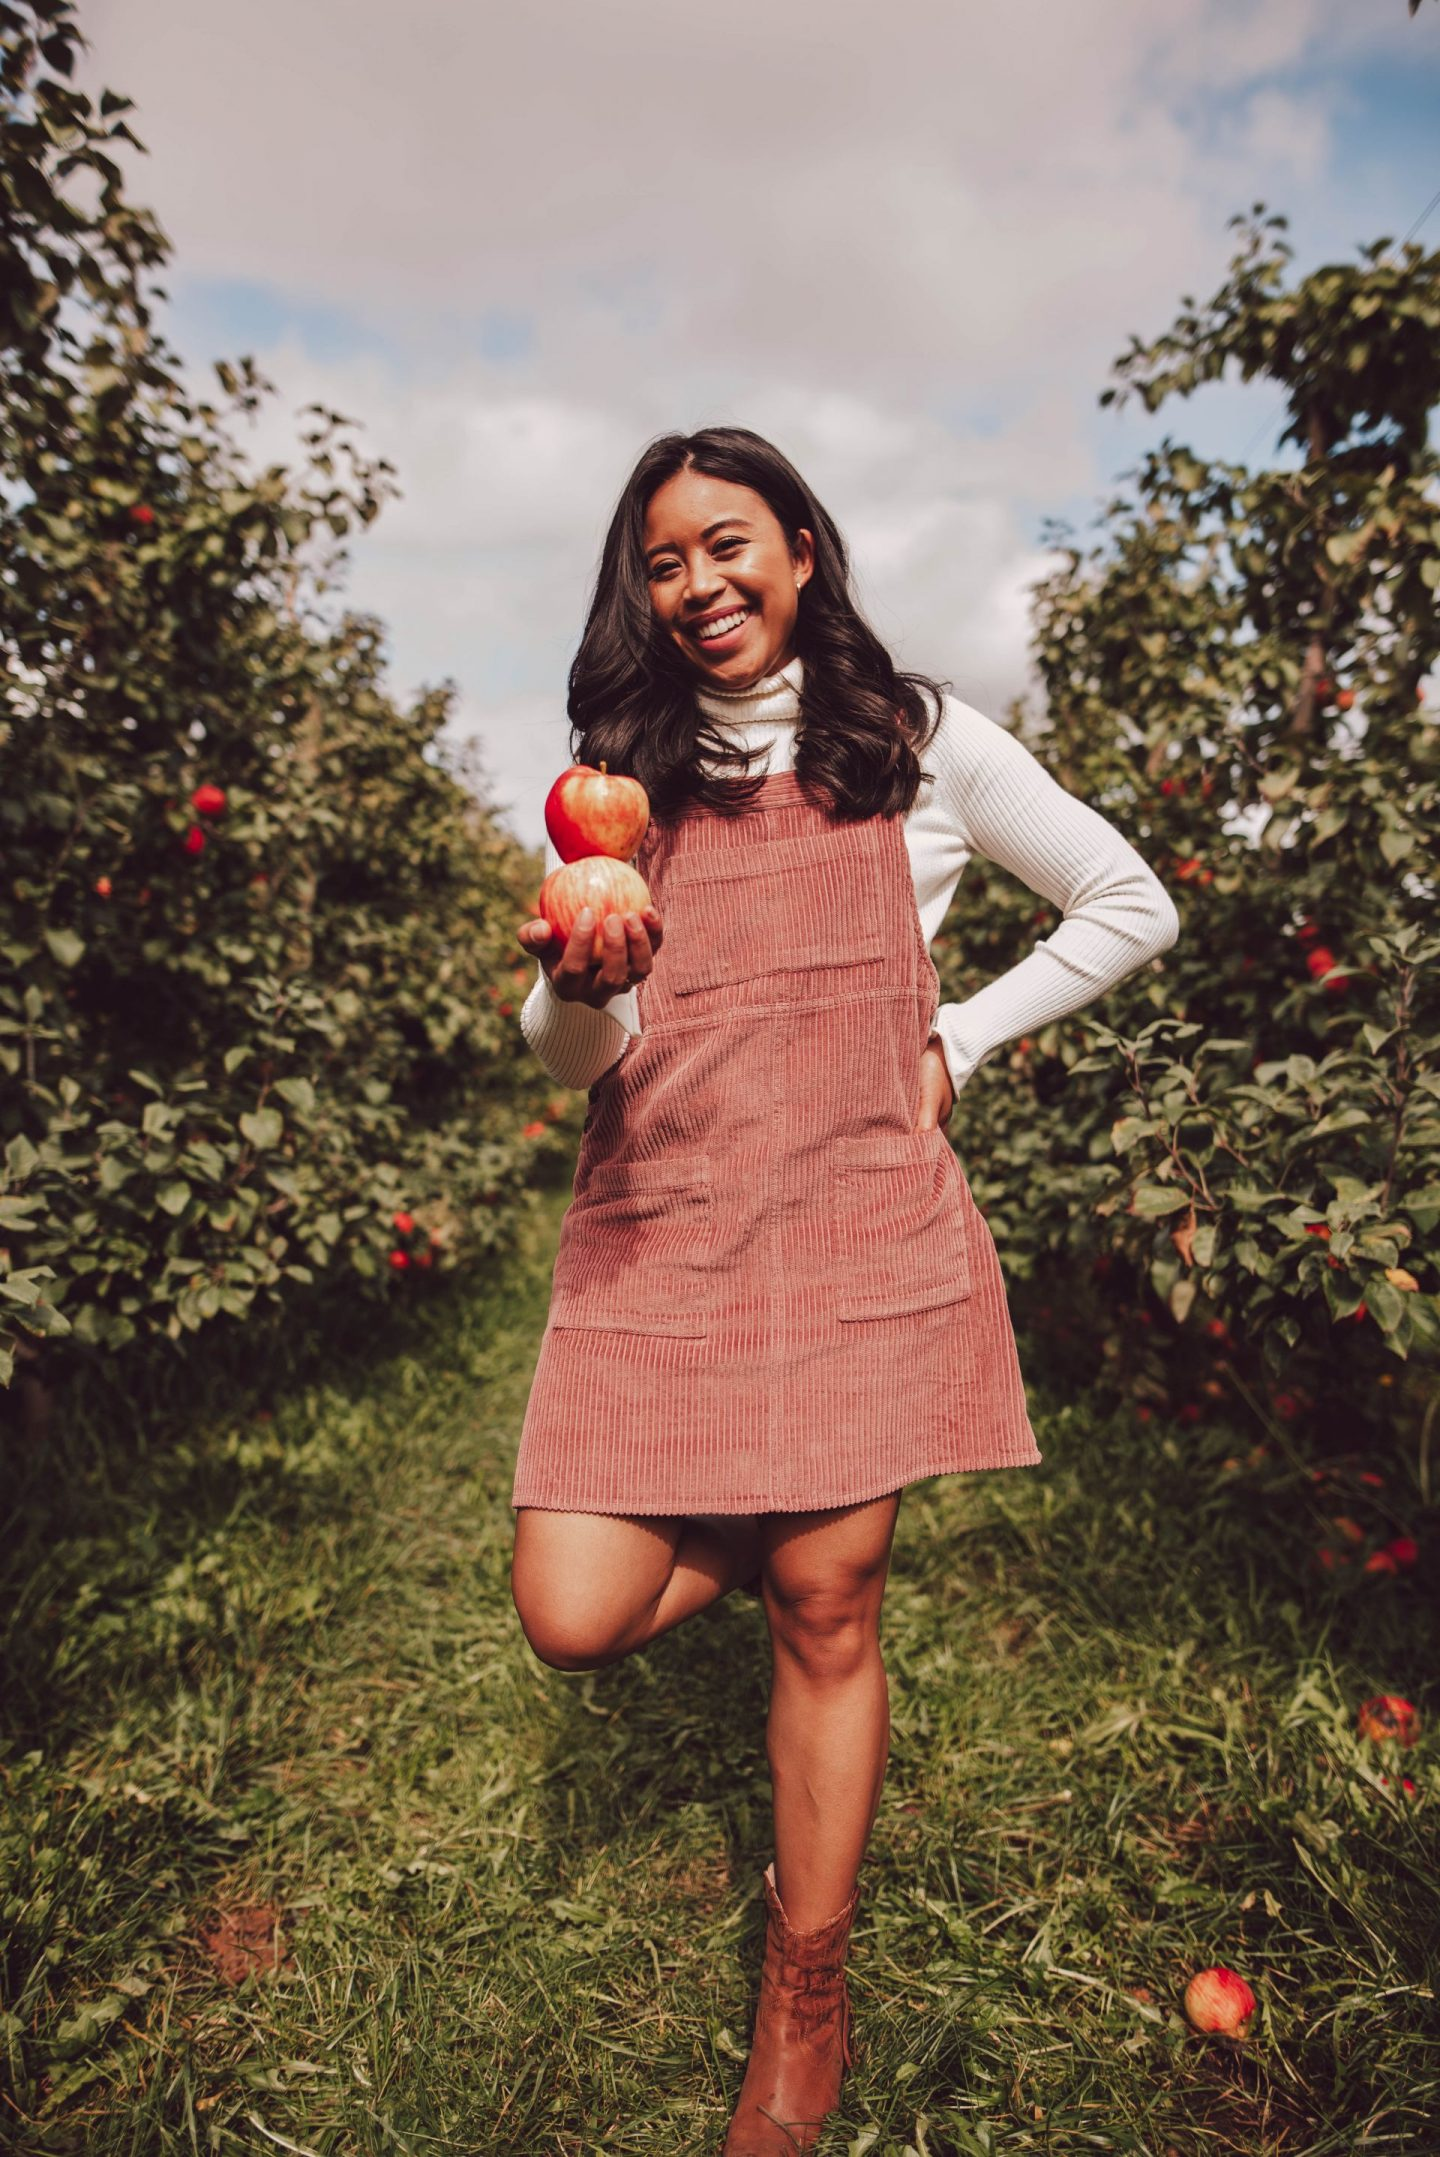 Bellewood Farms in Lynden, WA - how to pose at an apple orchard - apple picking photo shoot ideas - fall activities - apple picking photography - apple picking outfits